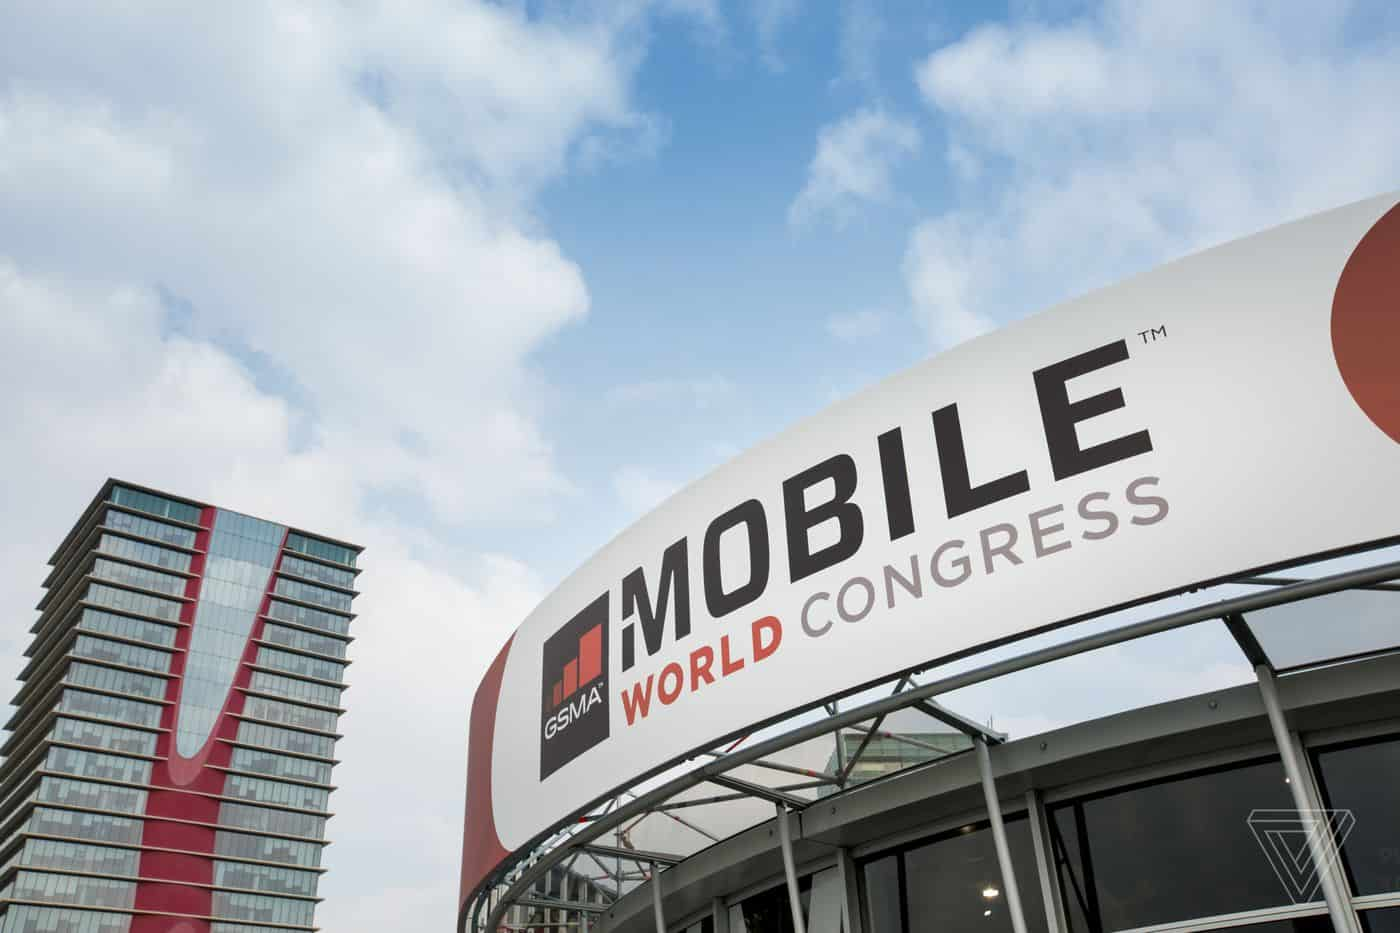 MWC 2020 is officially cancelled over coronavirus concerns